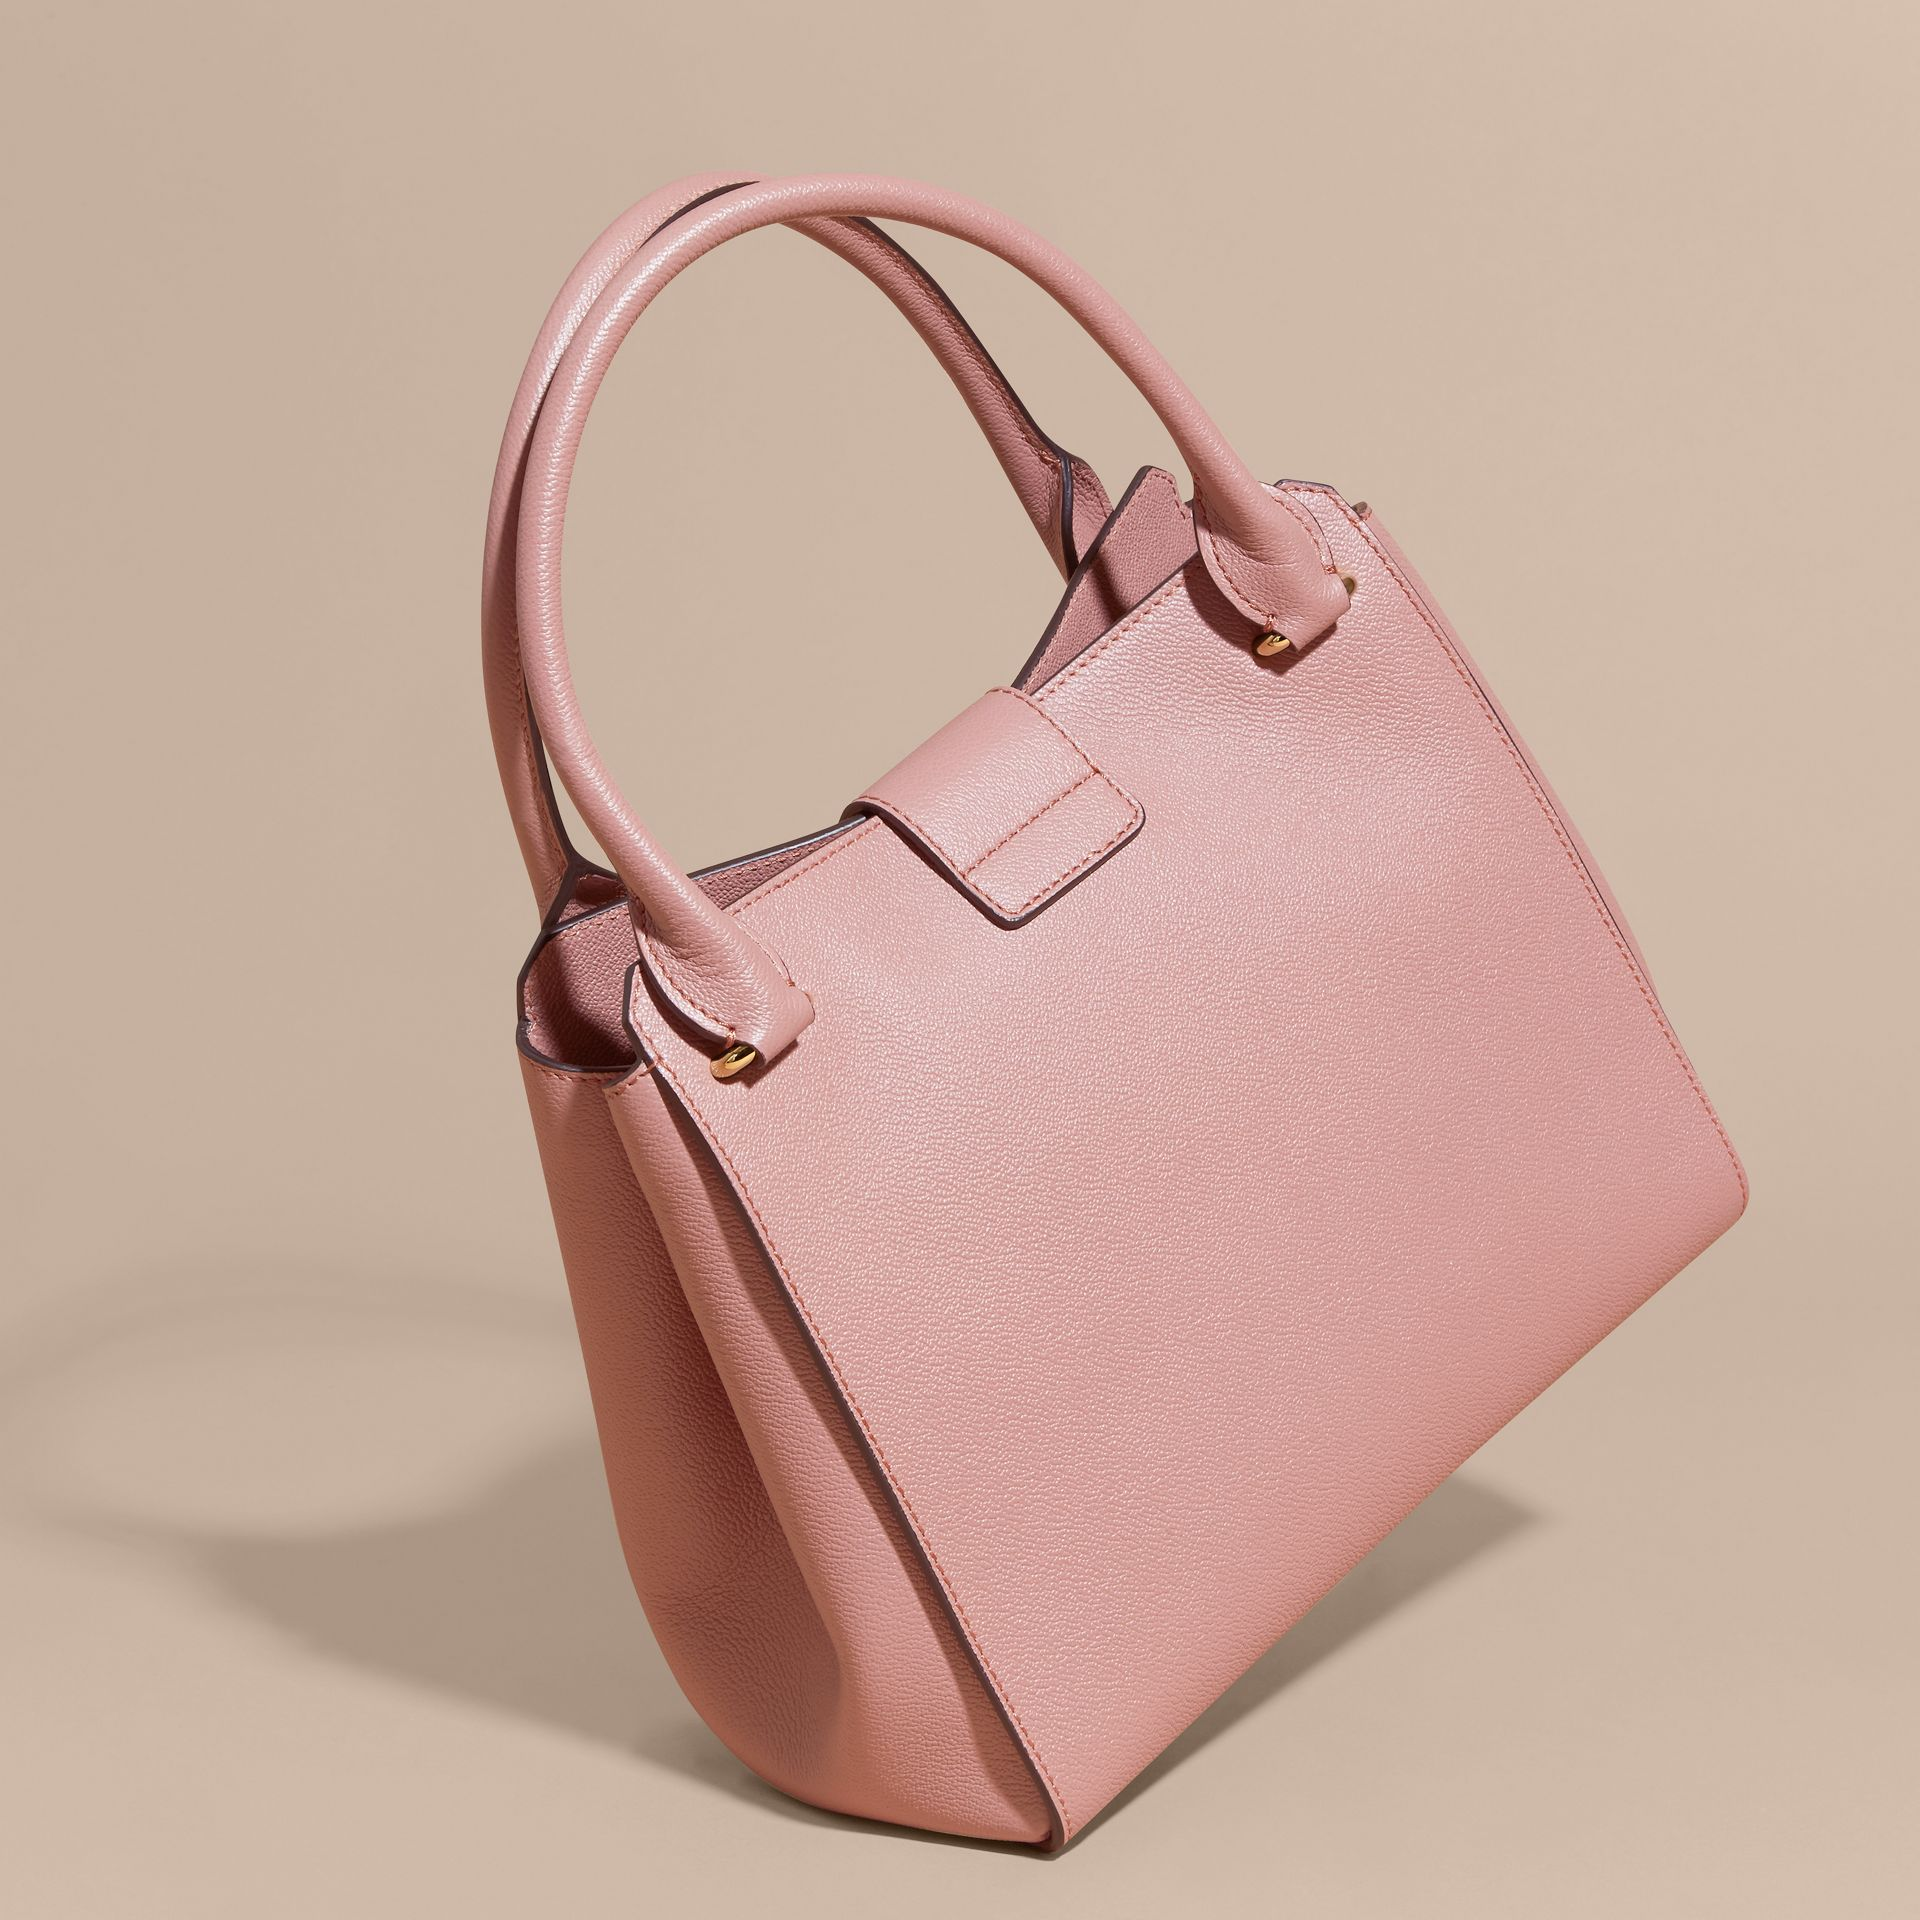 Dusty pink The Medium Buckle Tote in Grainy Leather Dusty Pink - gallery image 5